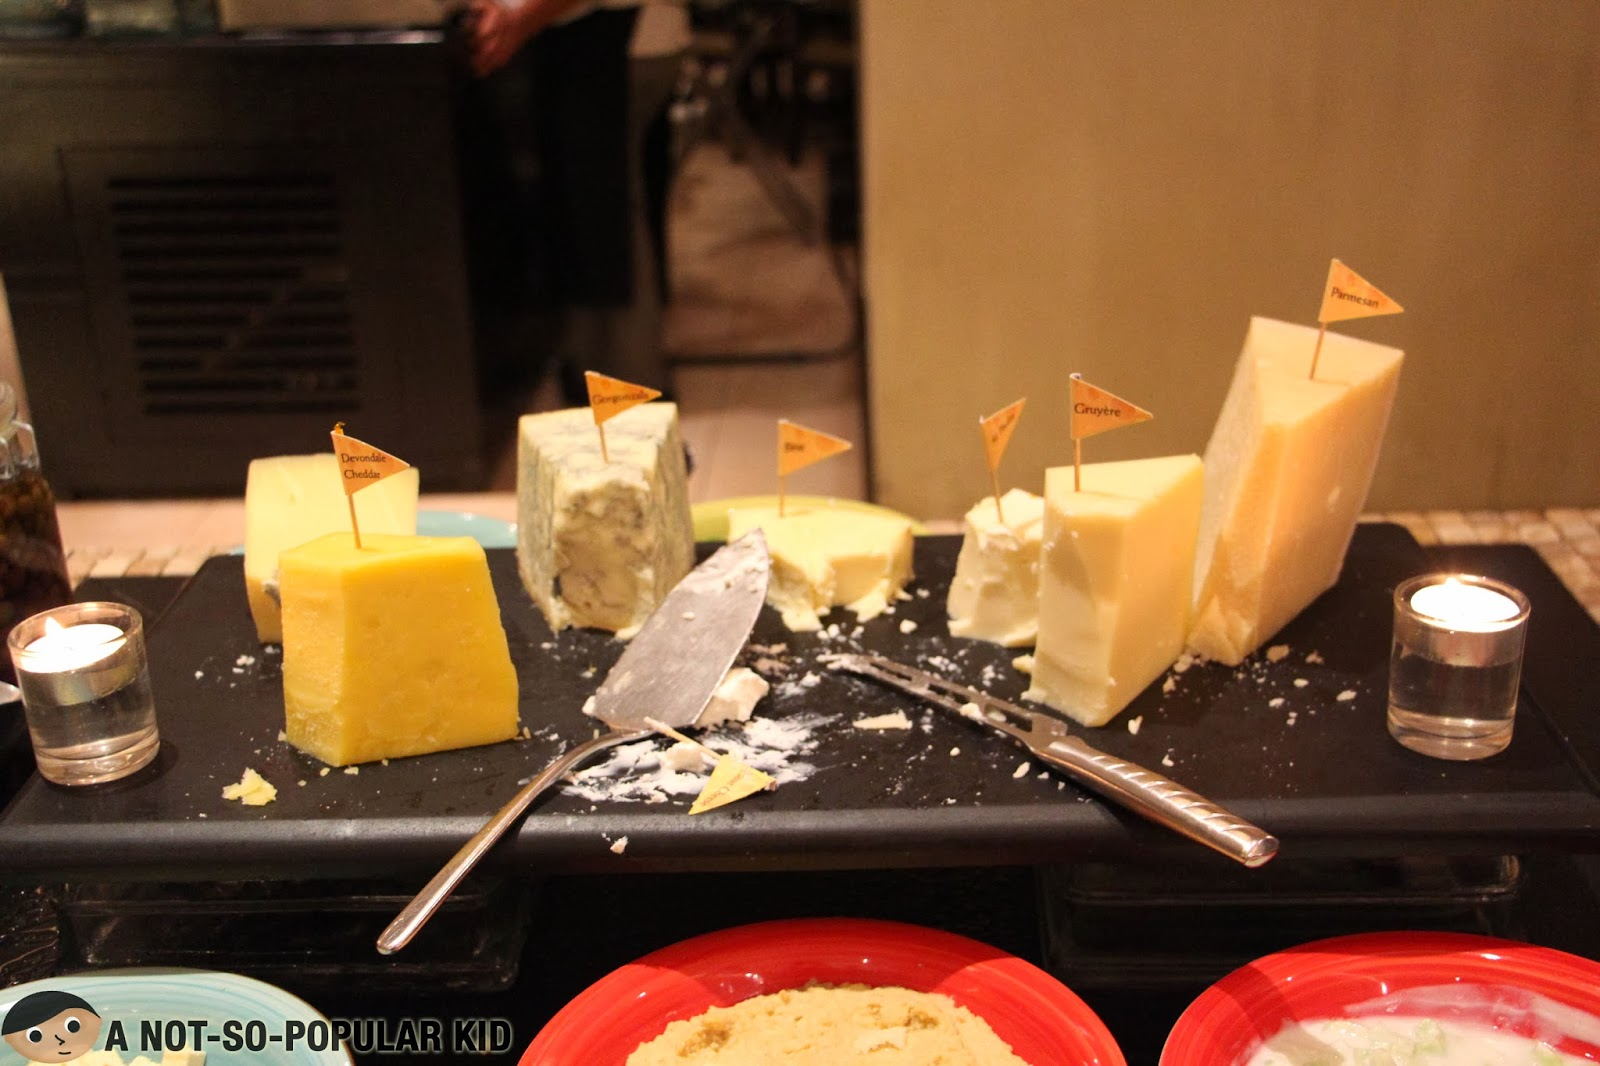 The Cheese Station of Basix - 7 Kinds of Cheese Available!